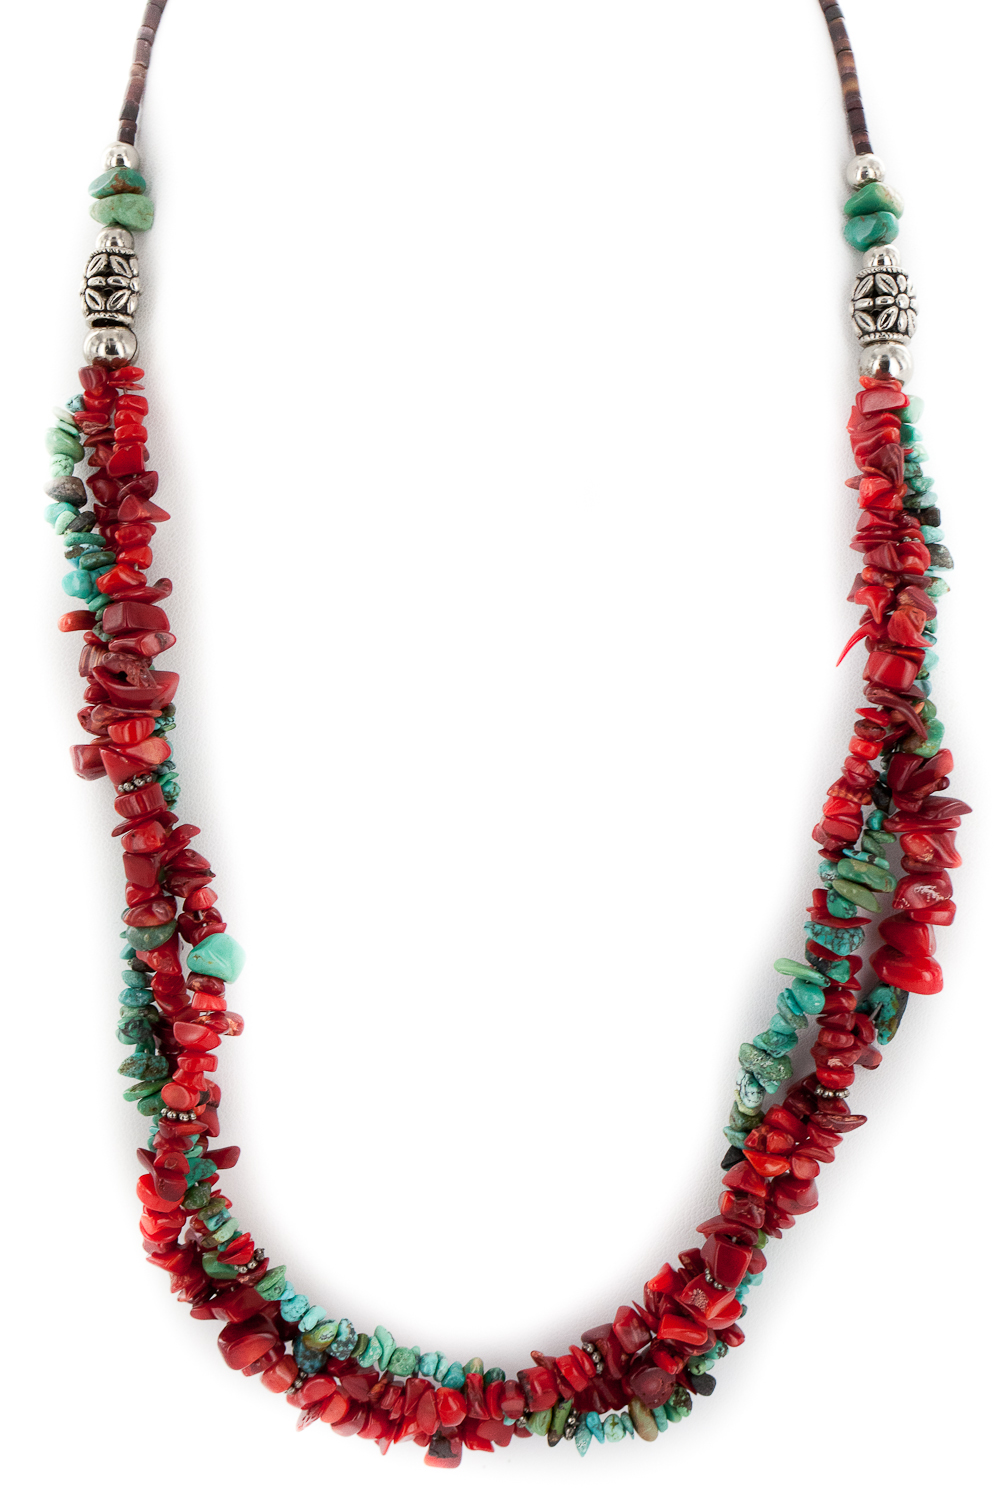 600 Retail Tag 3 Strand Authentic Made by Charlene Little Navajo .925 Sterling Silver Coral Natural Turquoise Twisted... by